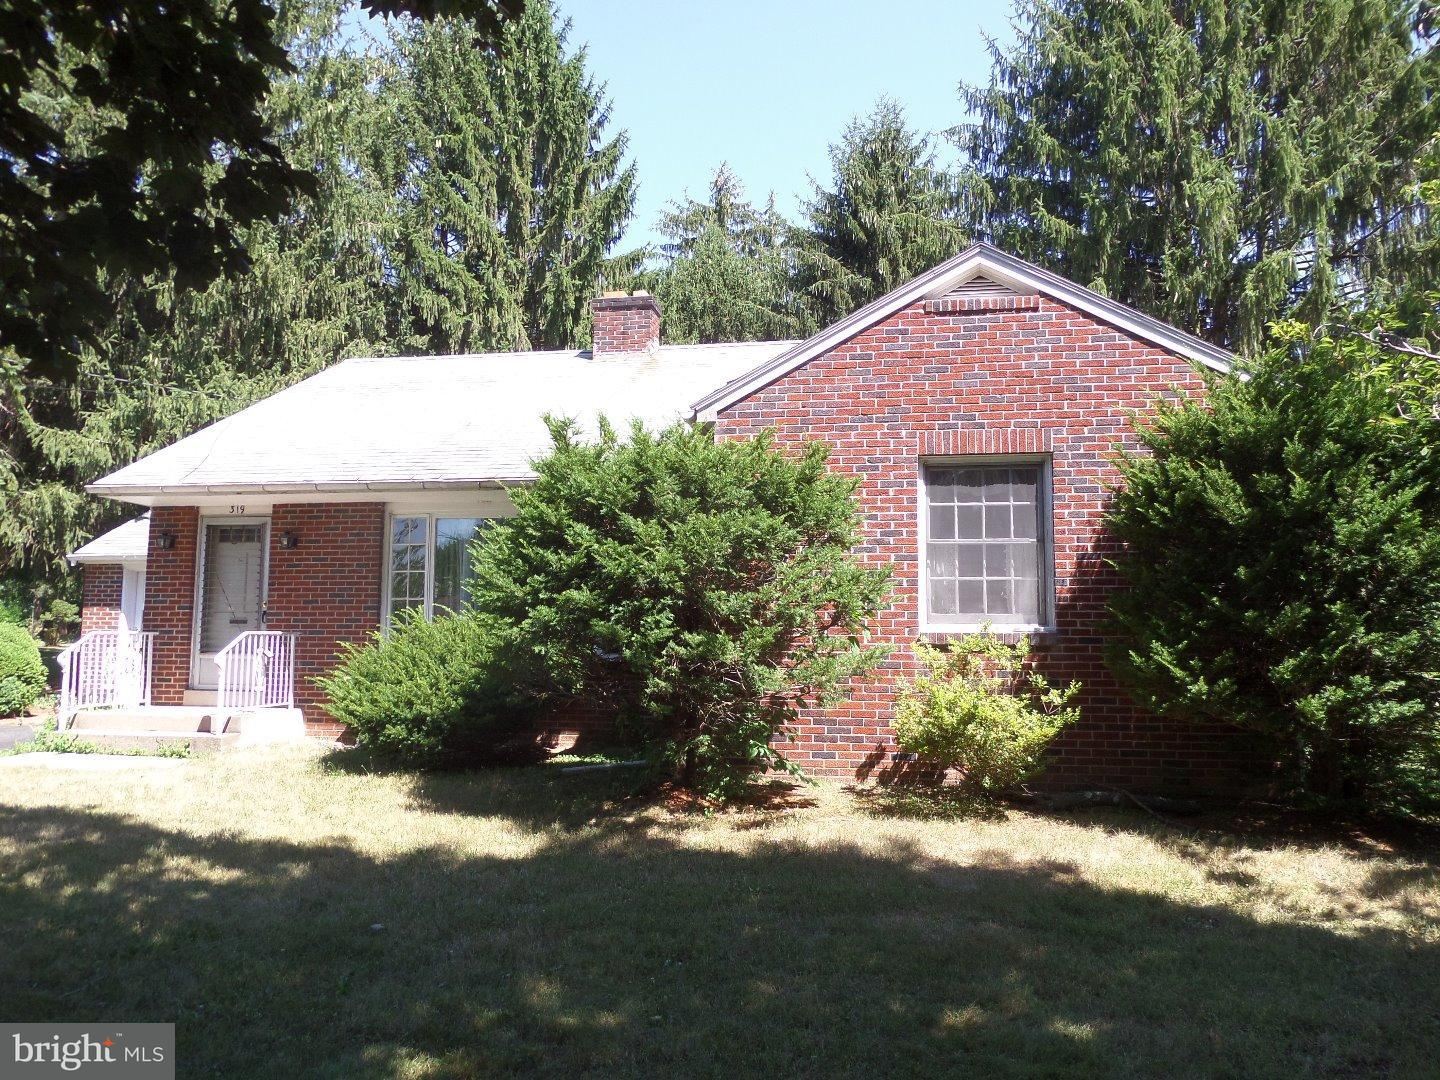 319 4TH ST, SHOEMAKERSVILLE - Listed at $94,000, SHOEMAKERSVILLE